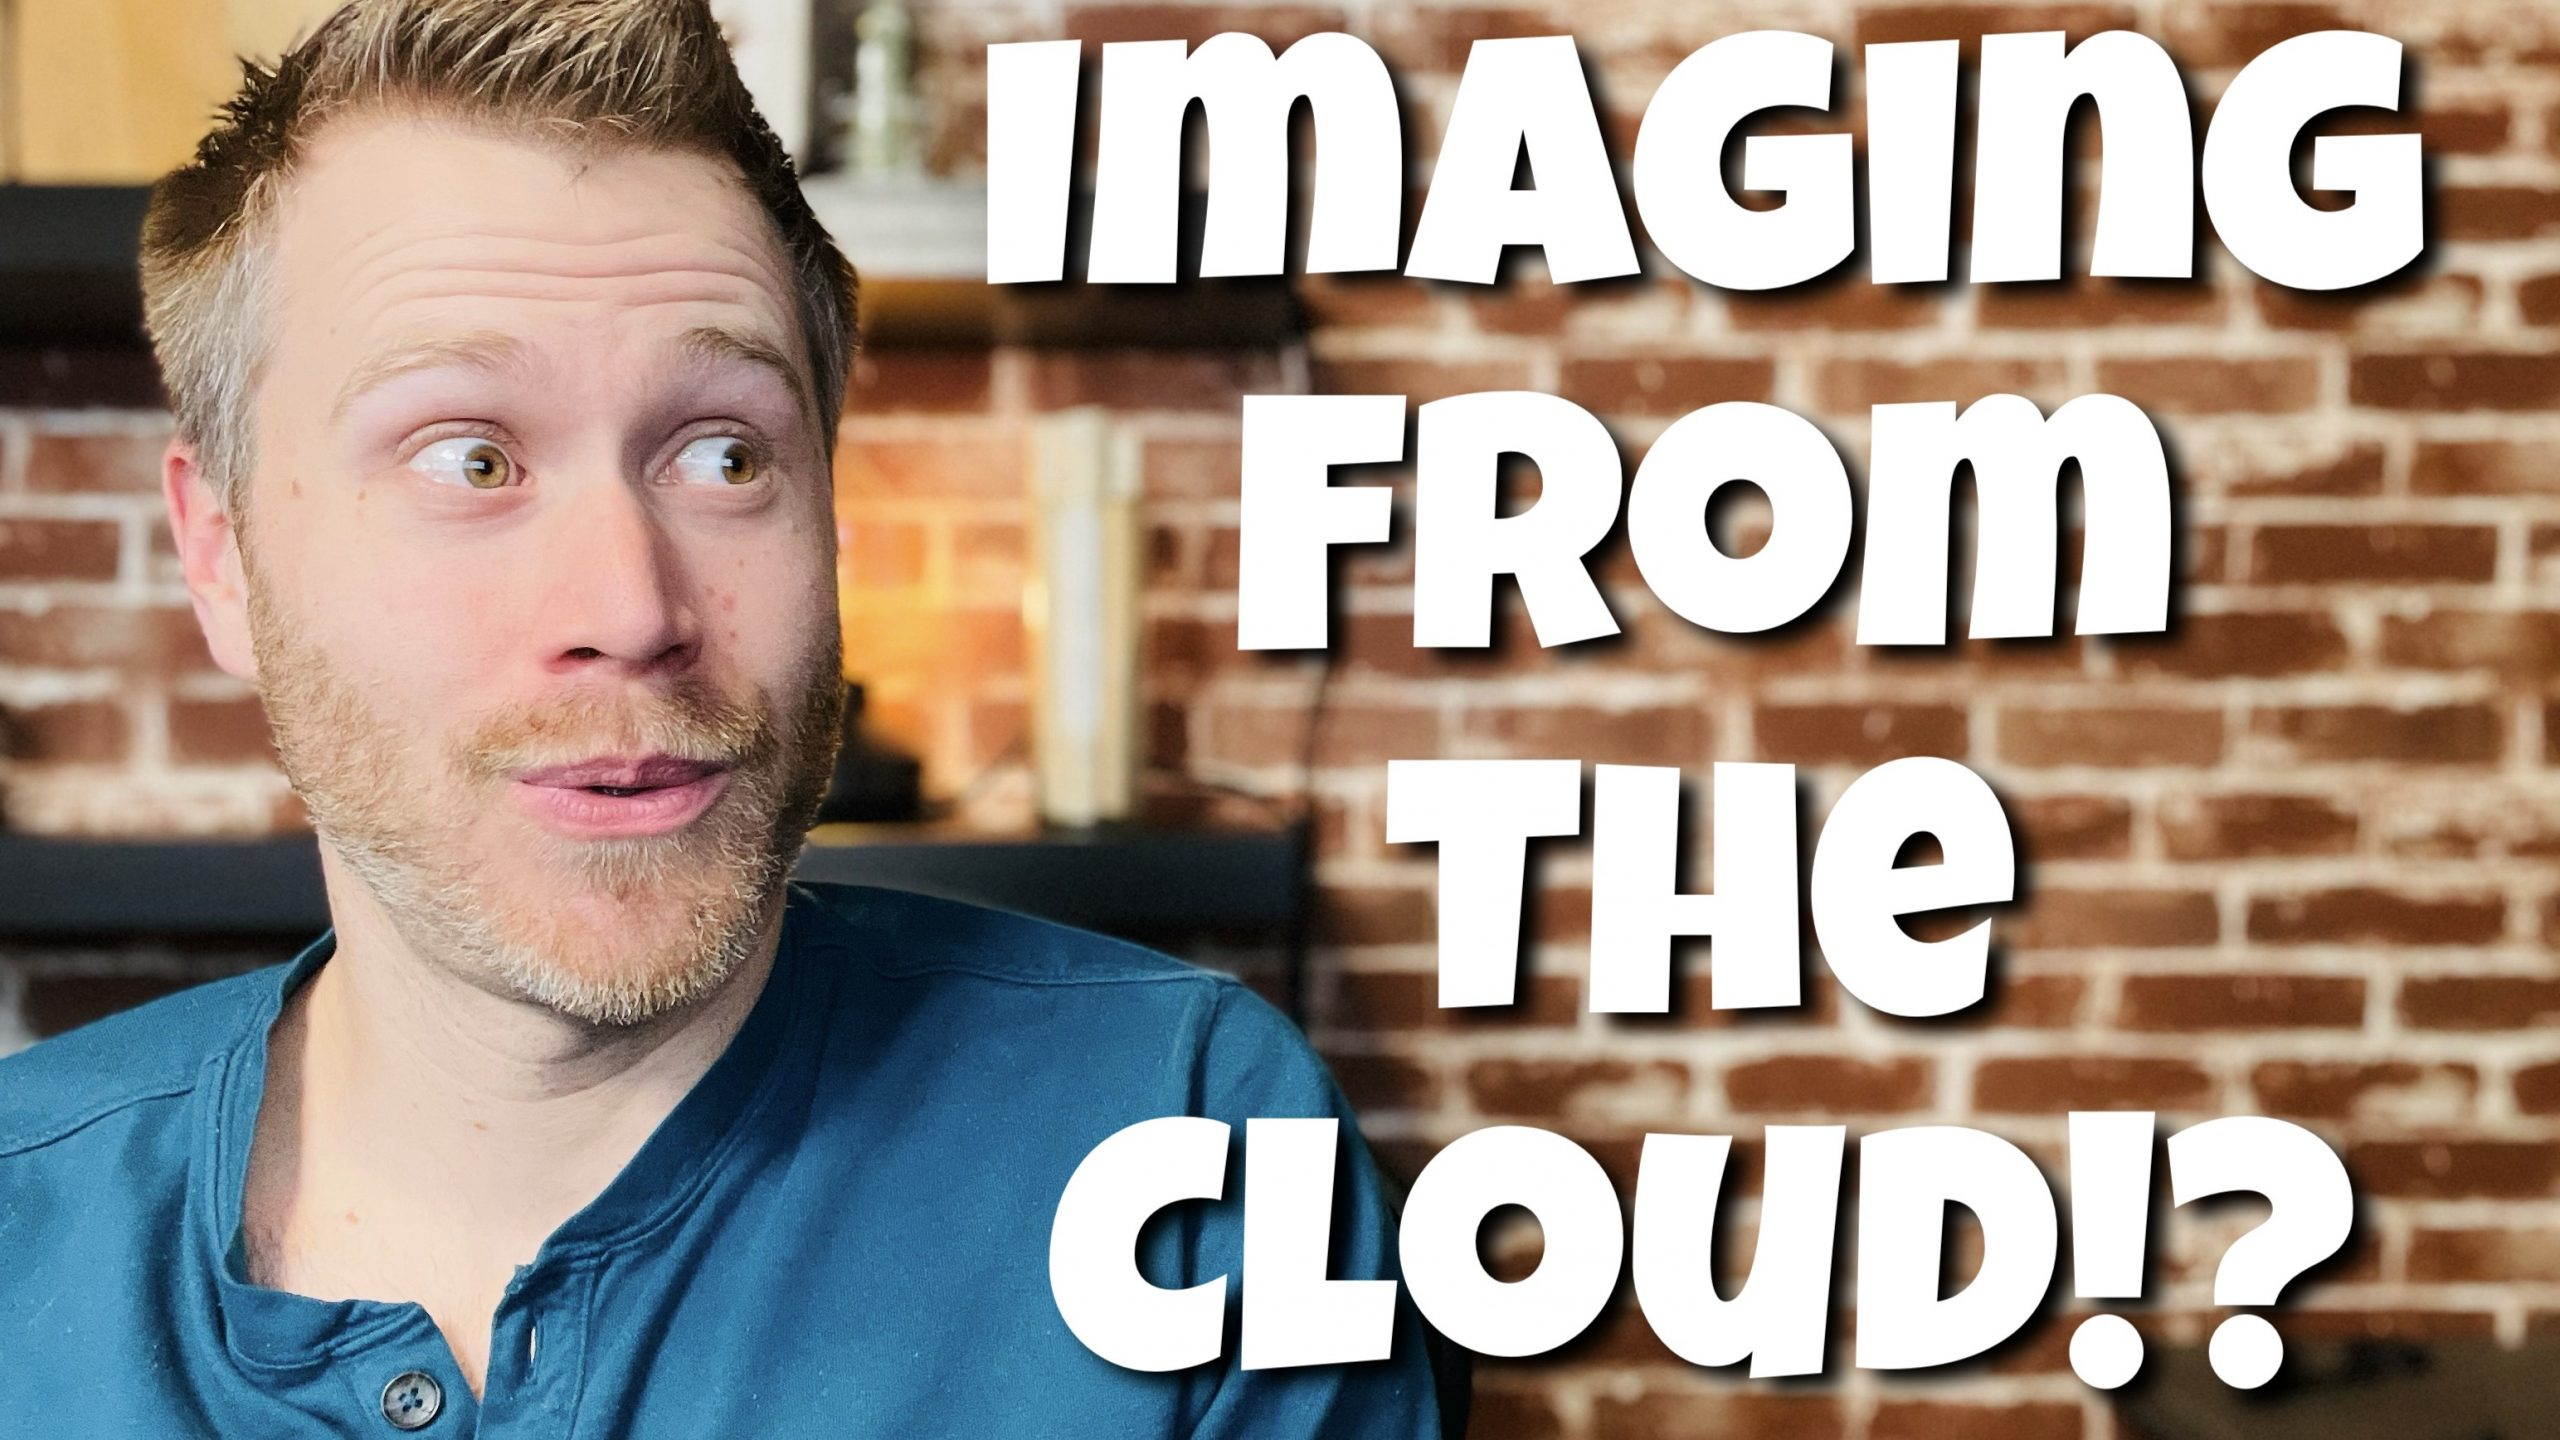 It's time to do imaging from the cloud!